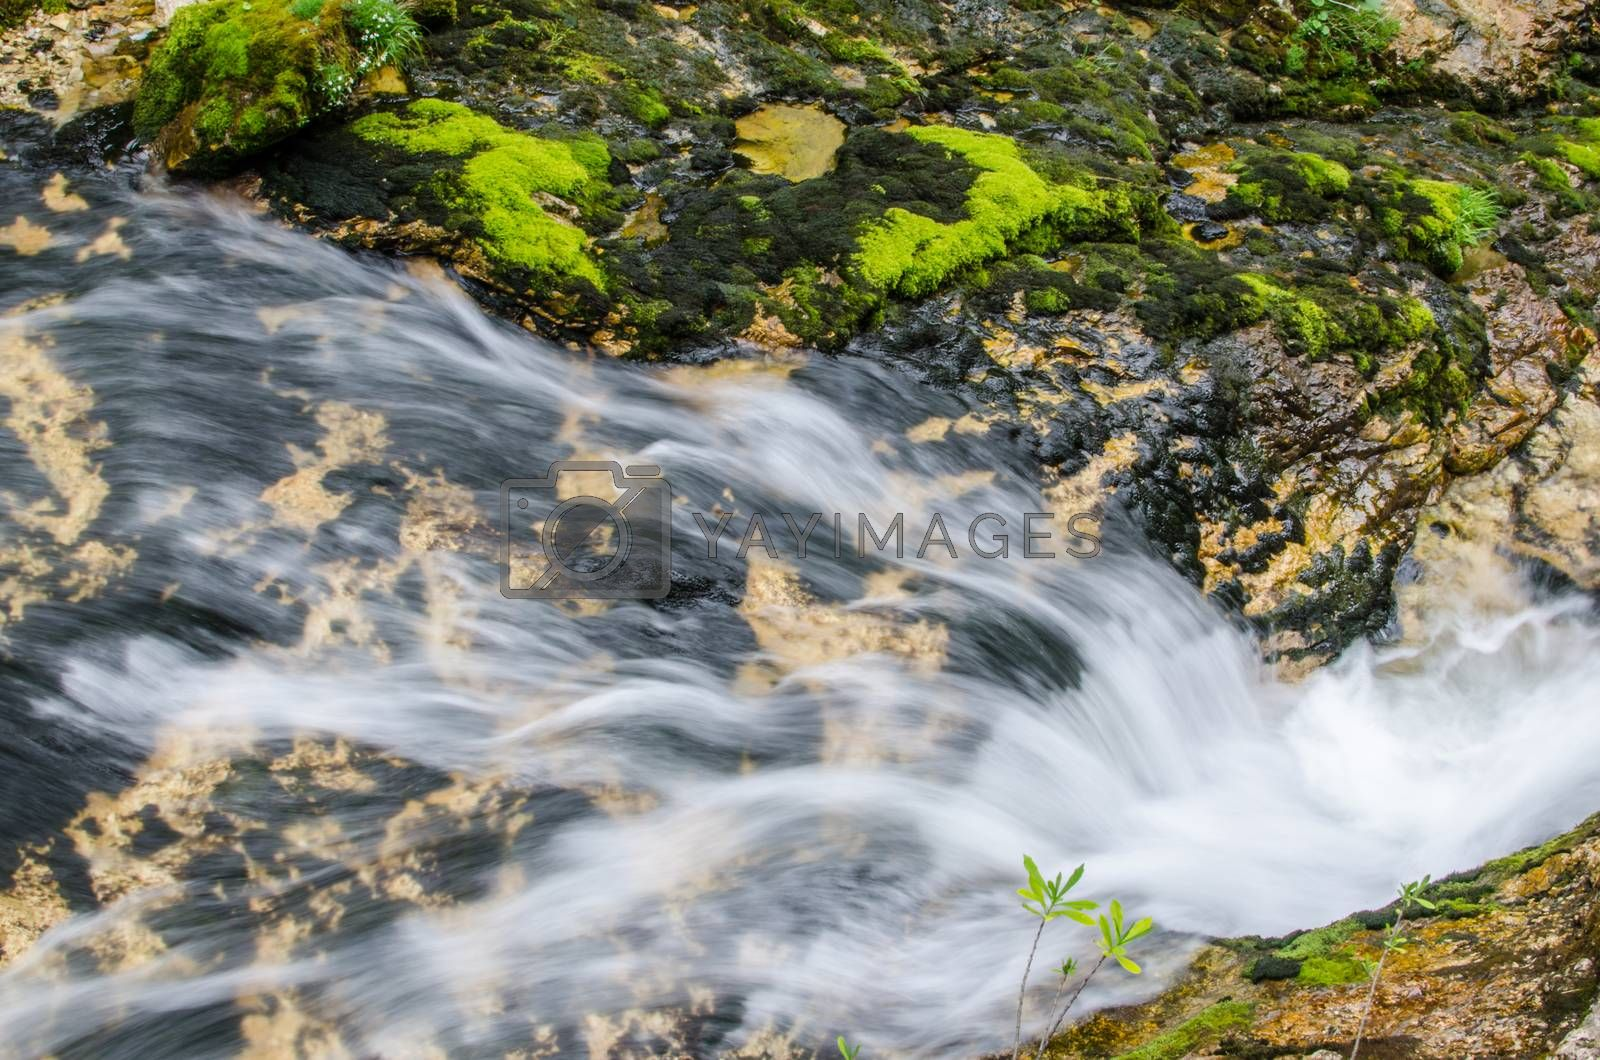 Royalty free image of fast flowing water from a stream by thomaseder